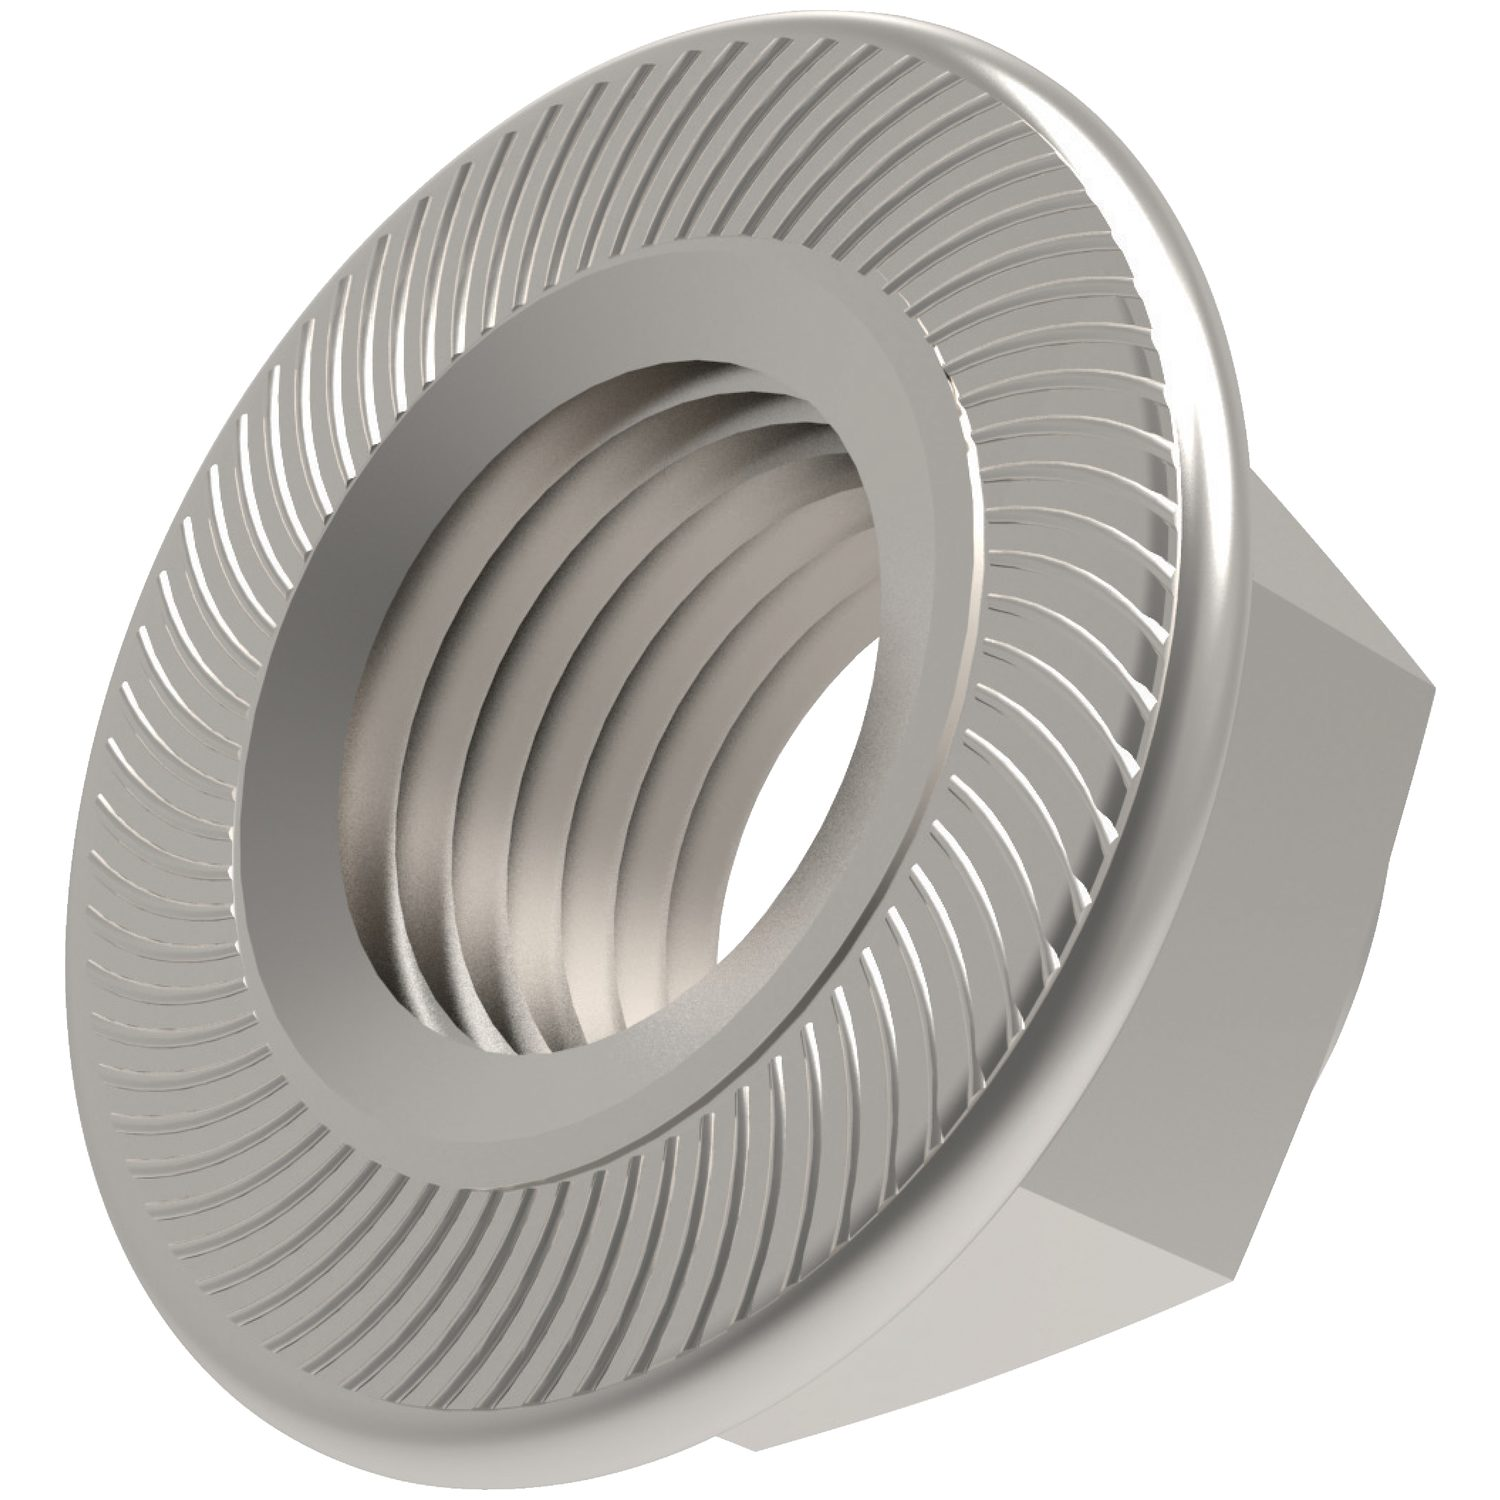 P0309.A4 - Serrated Flanged Nuts